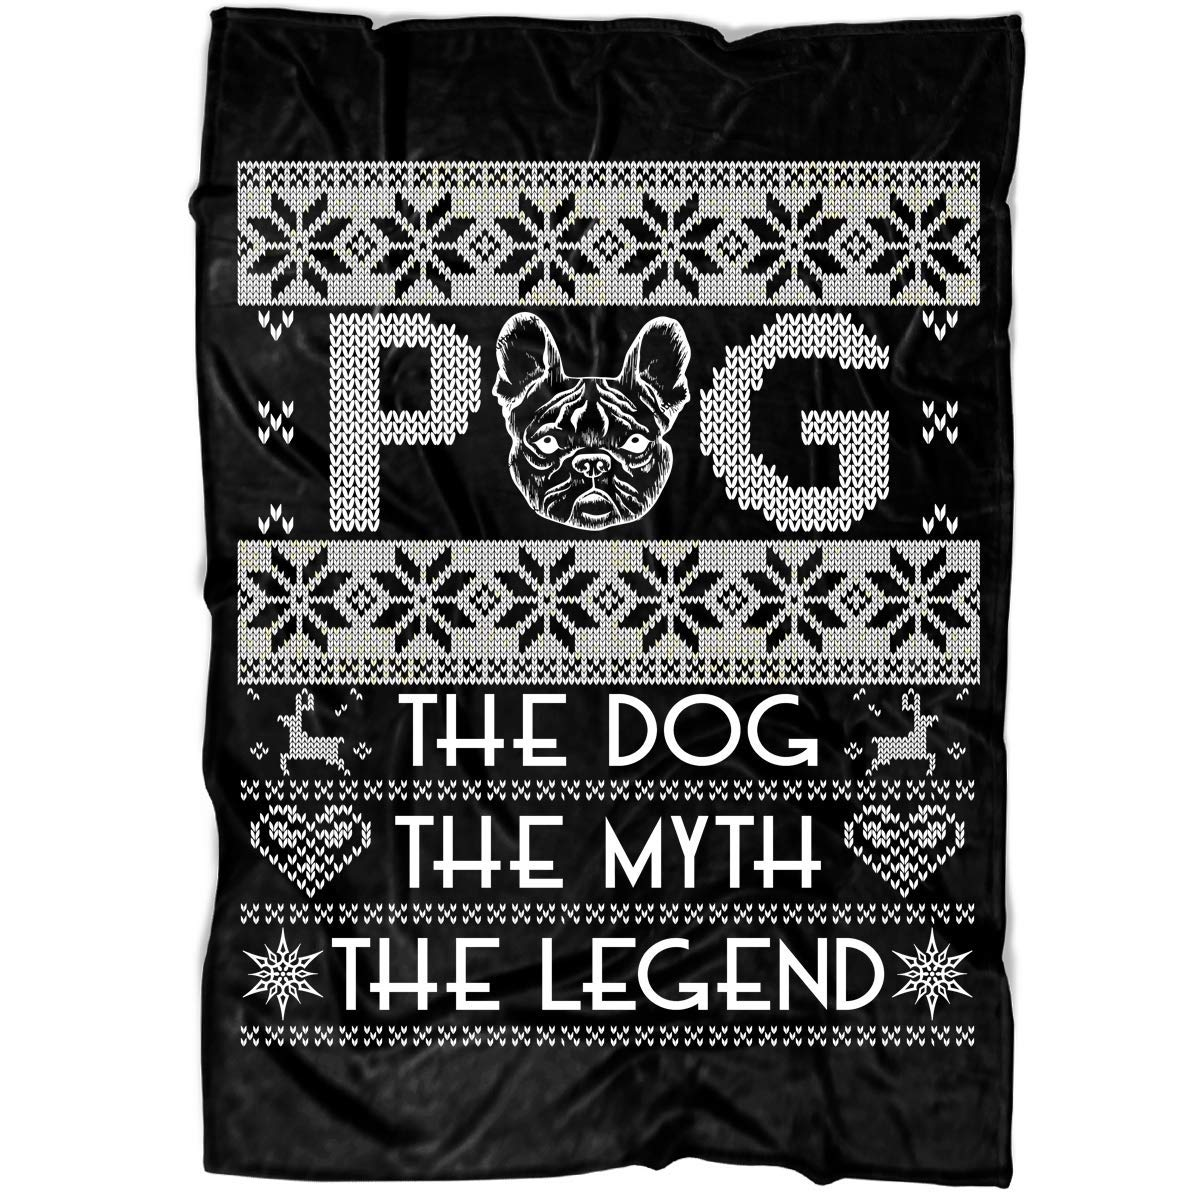 "COLUSTORE Pug Soft Fleece Throw Blanket, The Dog Fleece Luxury Blanket (Medium Fleece Blanket (60""x50"") - Black)"